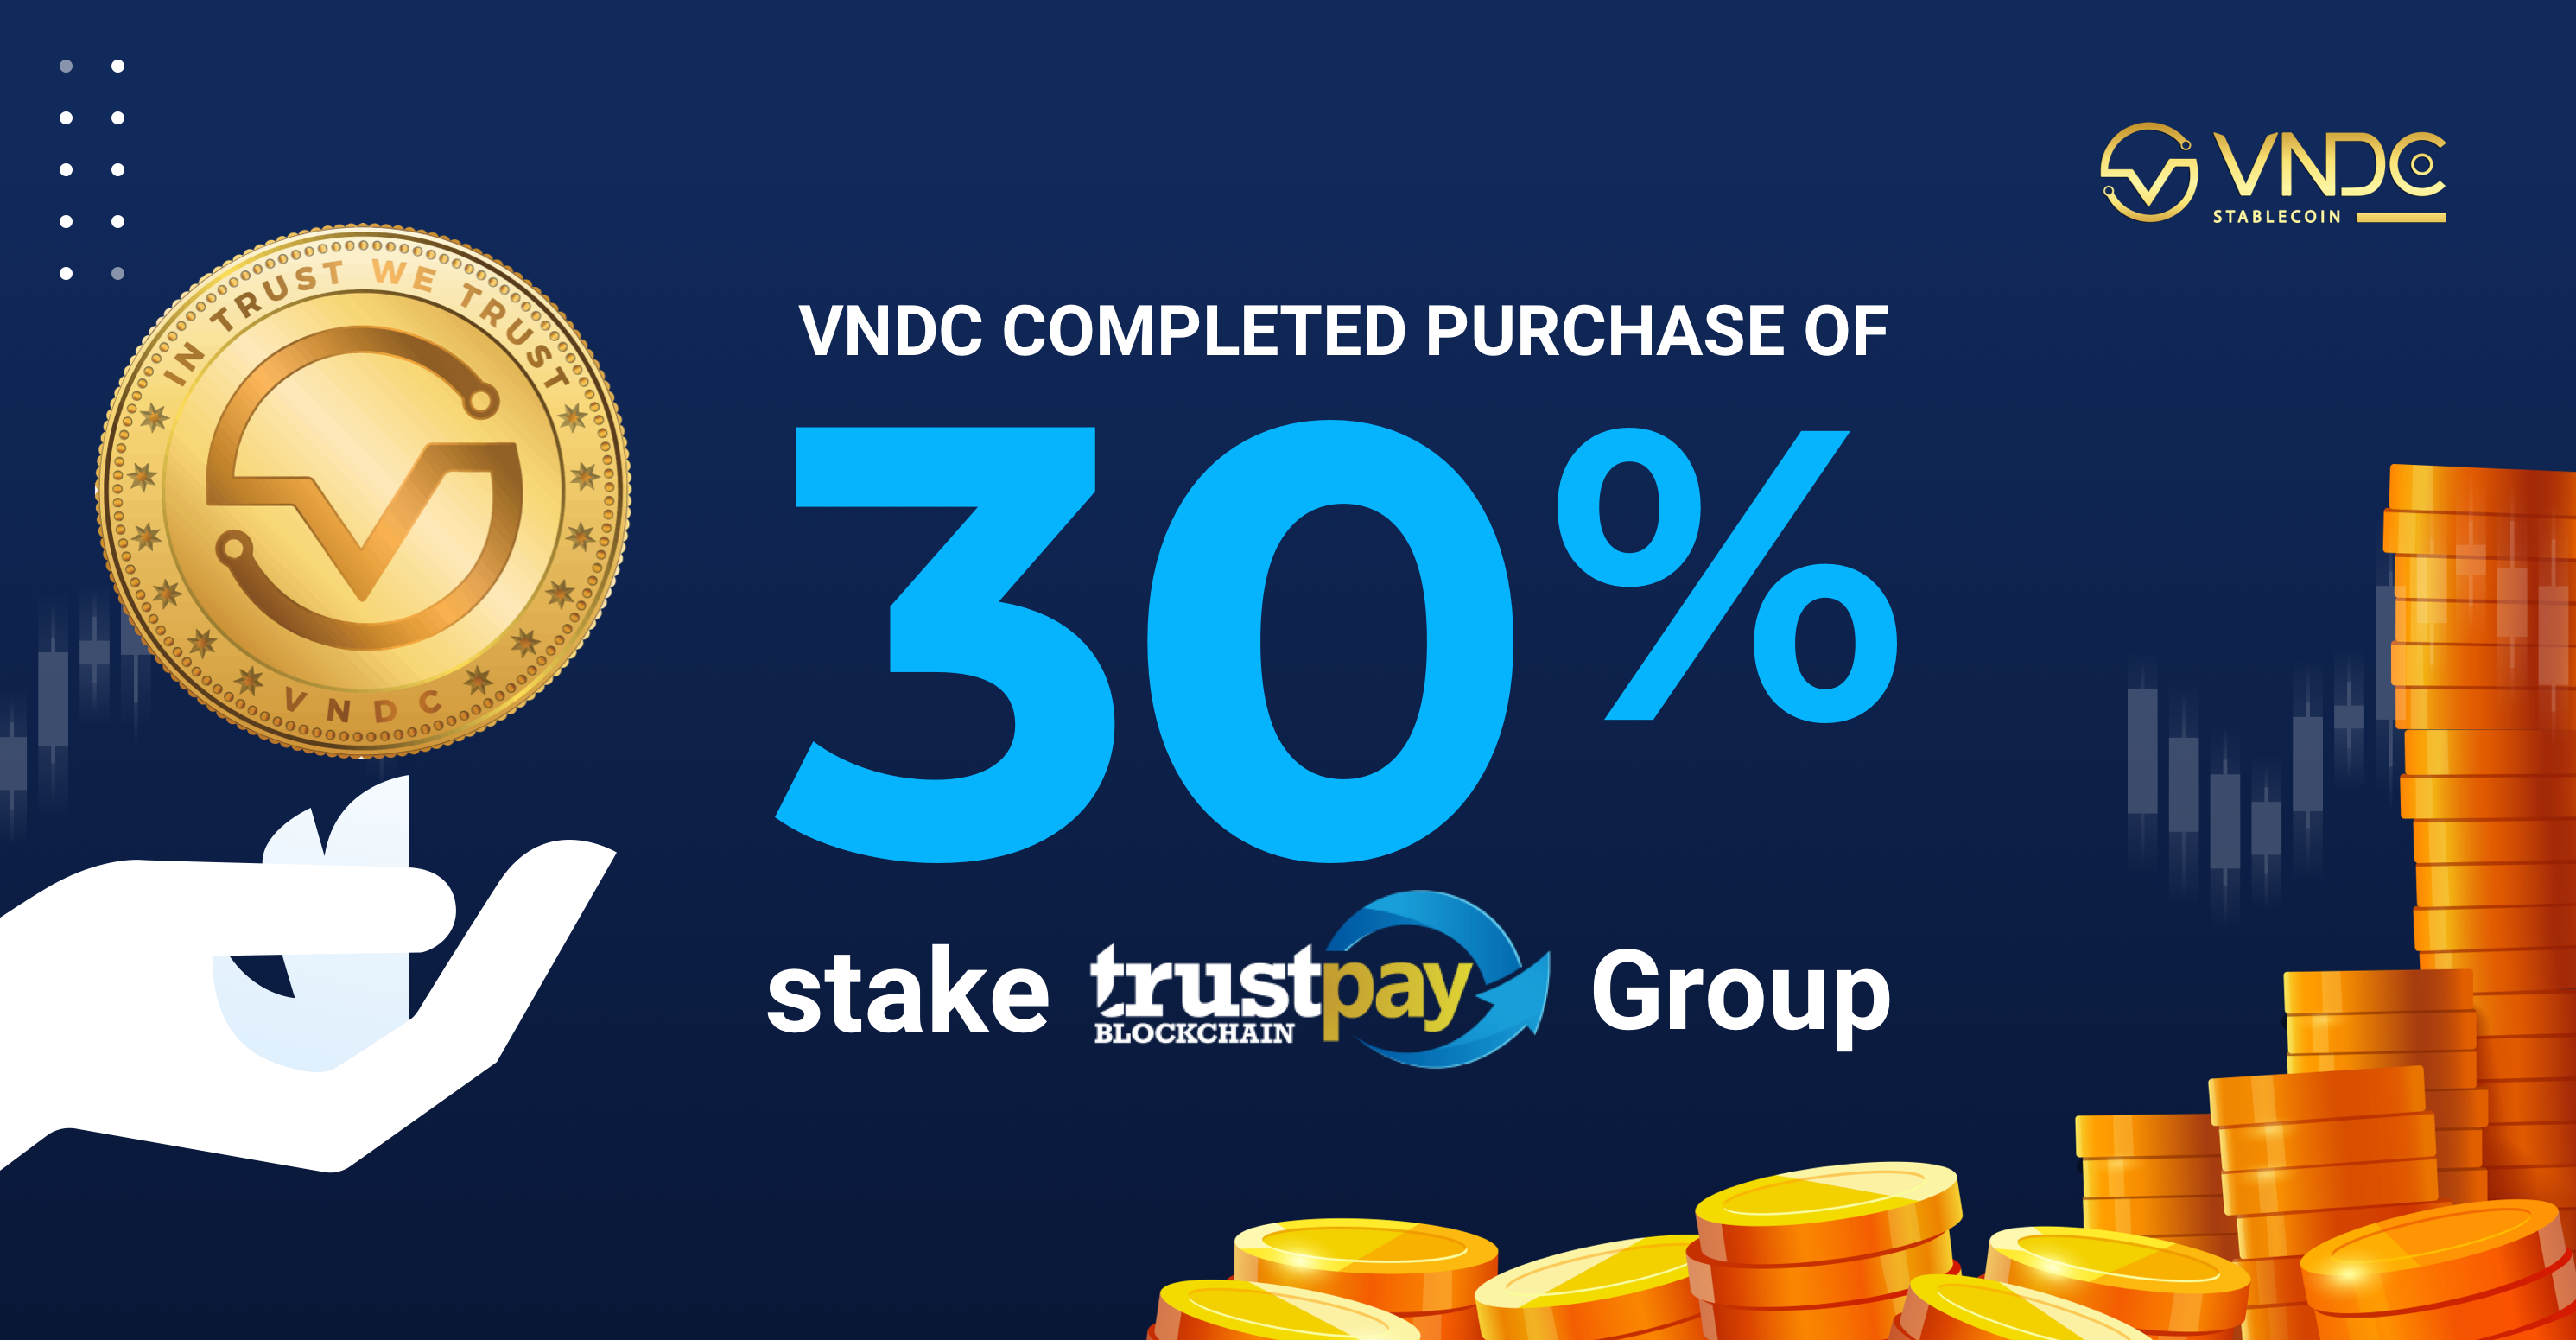 VNDC completed purchase of 30% stake in TRUSTpay Group, the company that priced VND 100 billion